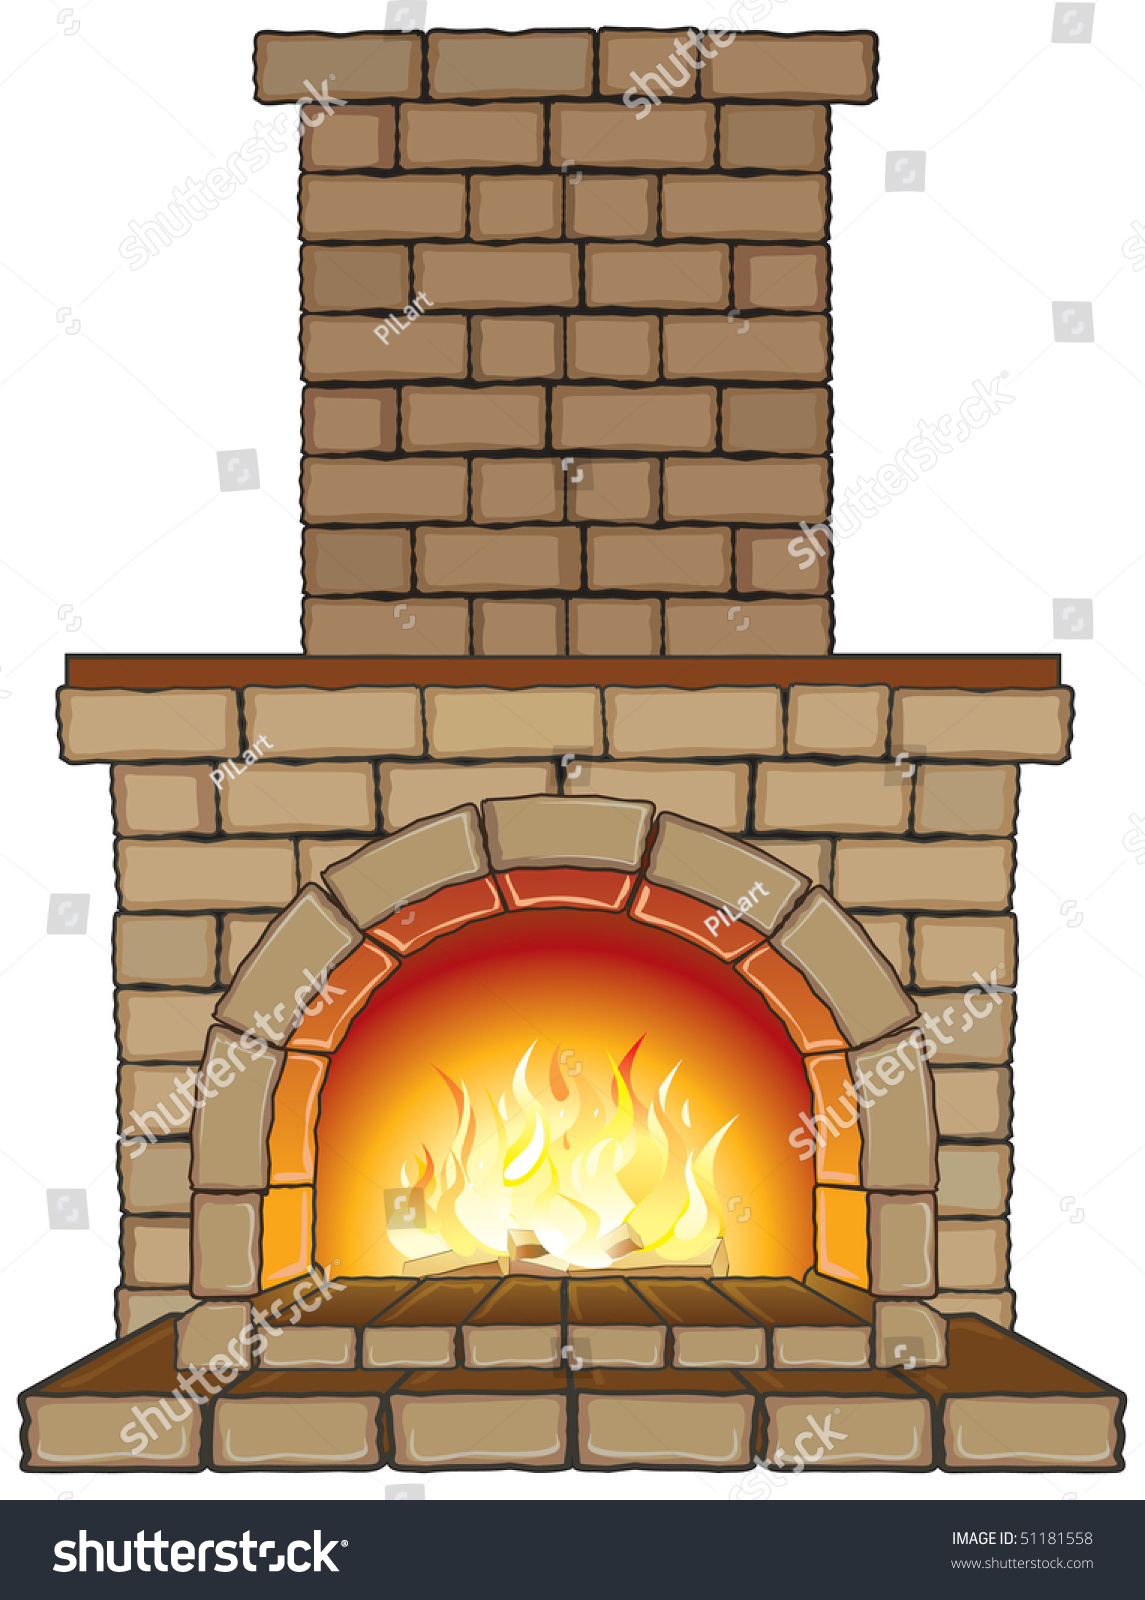 clipart fireplace fire - photo #23